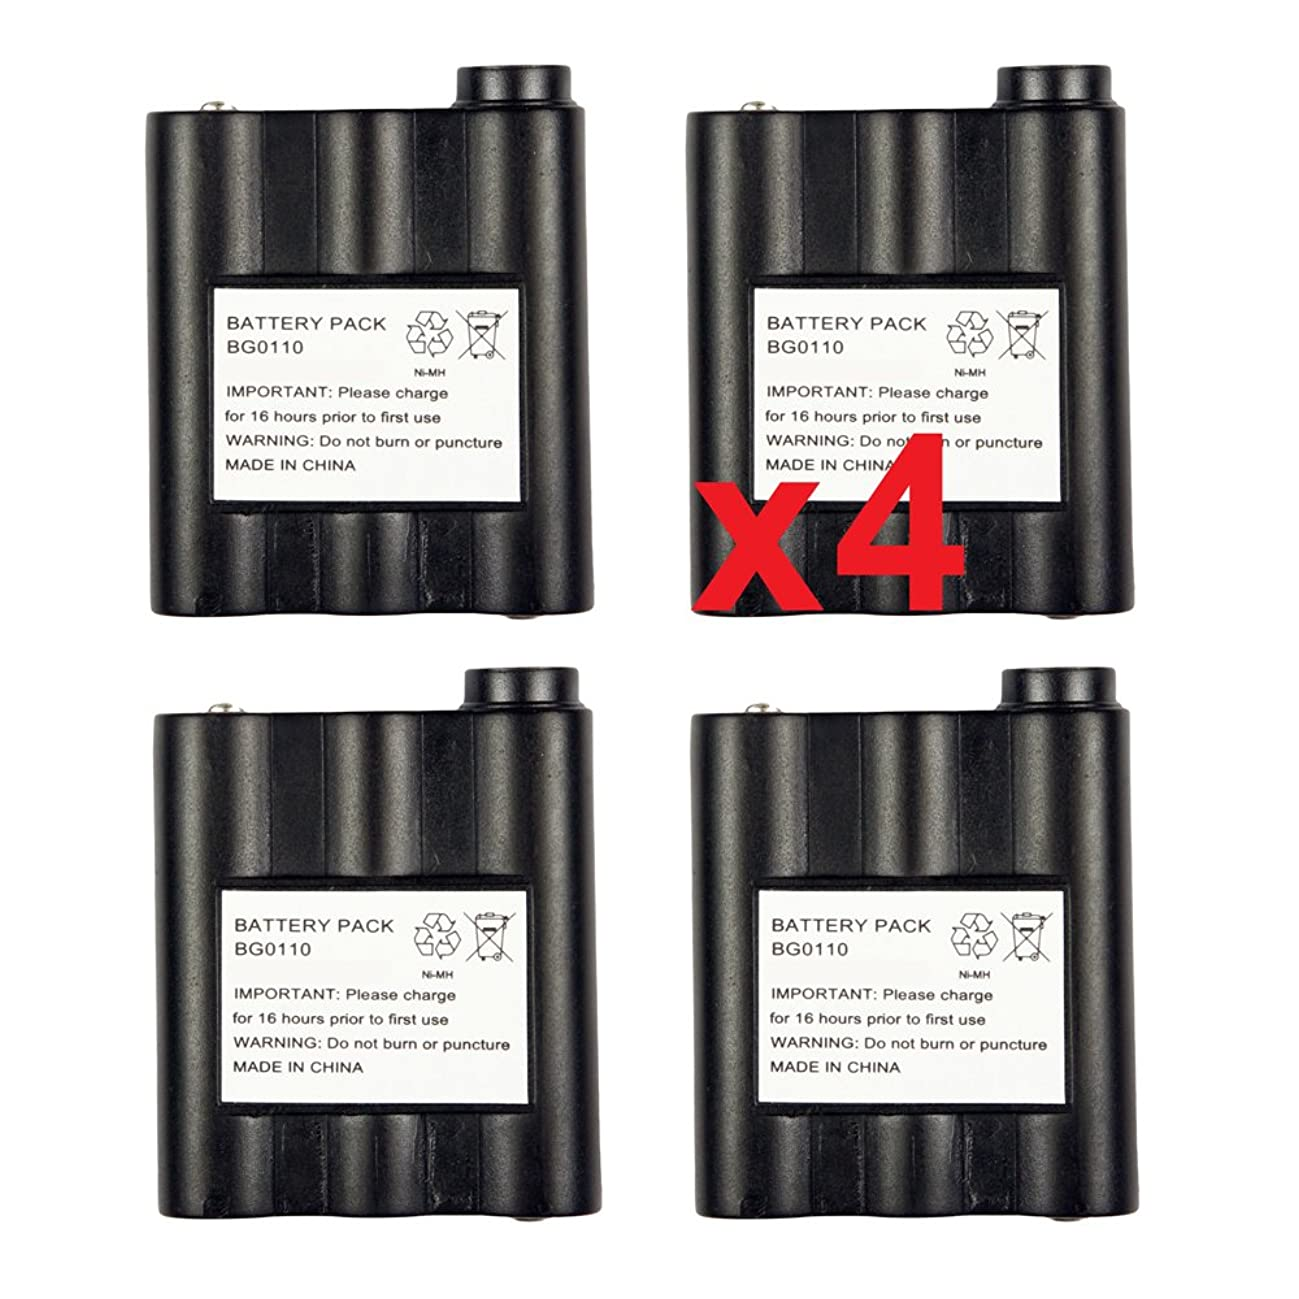 4 Pack Fenzer Replacement Two-Way Radio GMRS / FRS Rechargeable Battery for Midland GXT-700 GXT-710 GXT-720 GXT-750 GXT-756 GXT-757 GXT-775 GXT-795 GXT-800 GXT-850 GXT-900 GXT-950